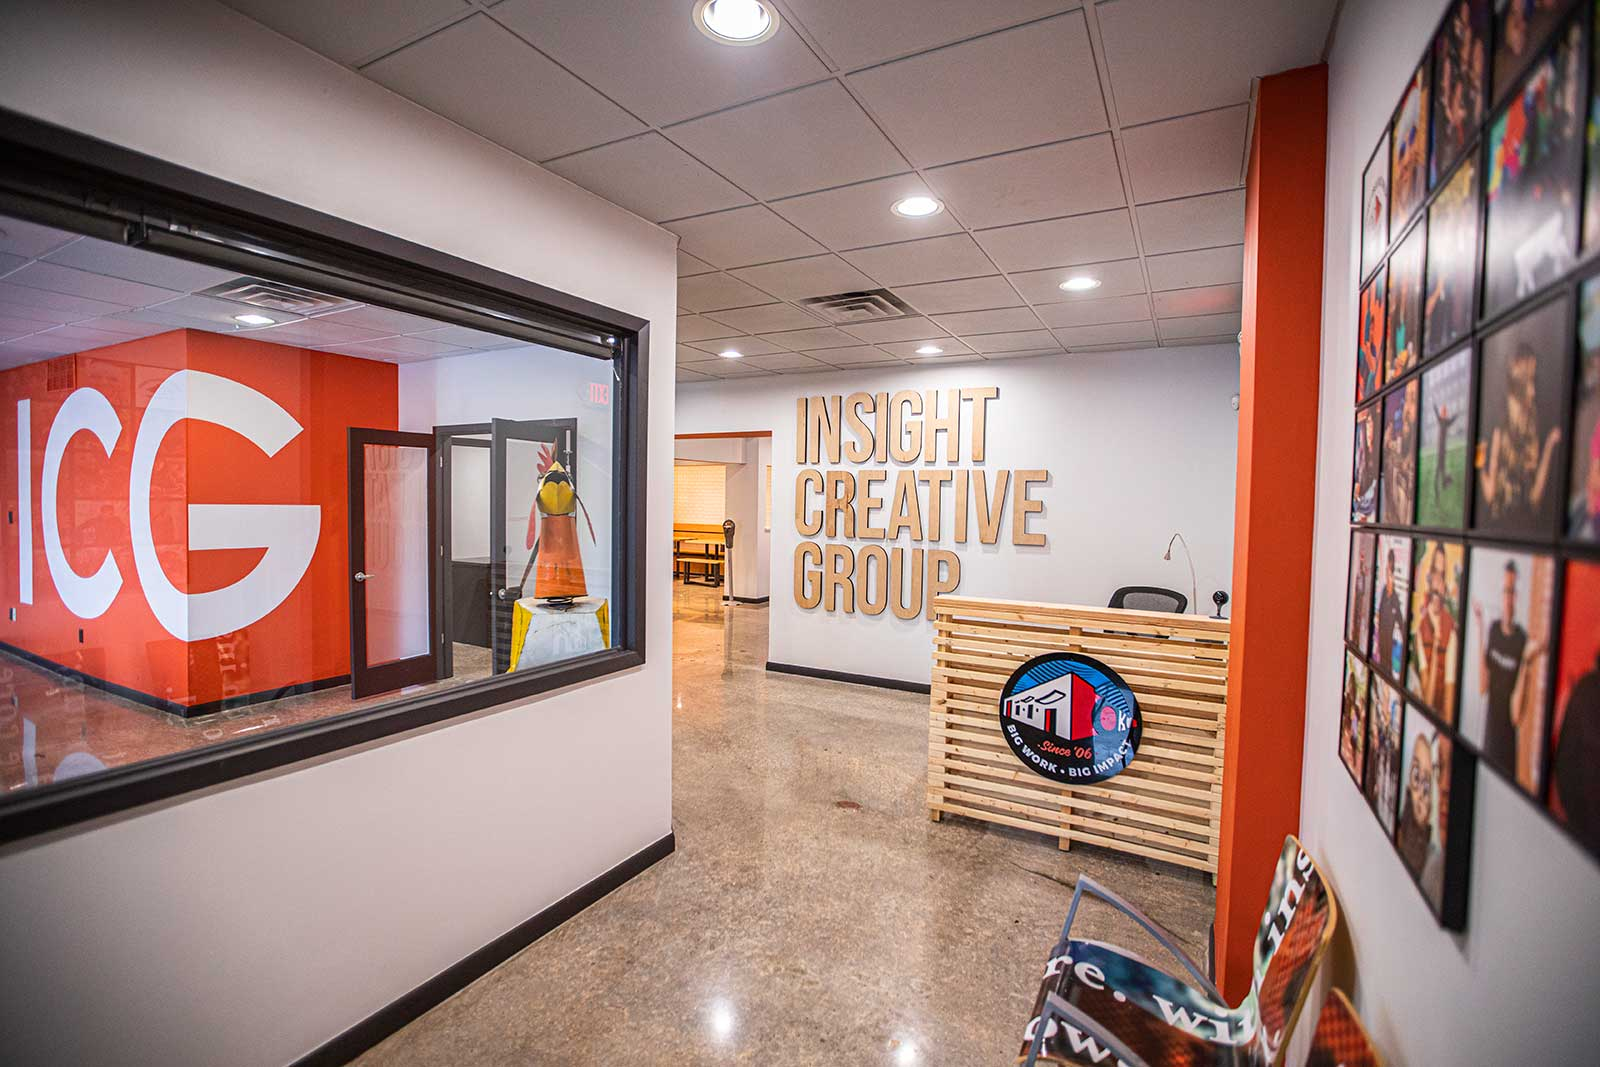 Welcome to Insight Creative Group